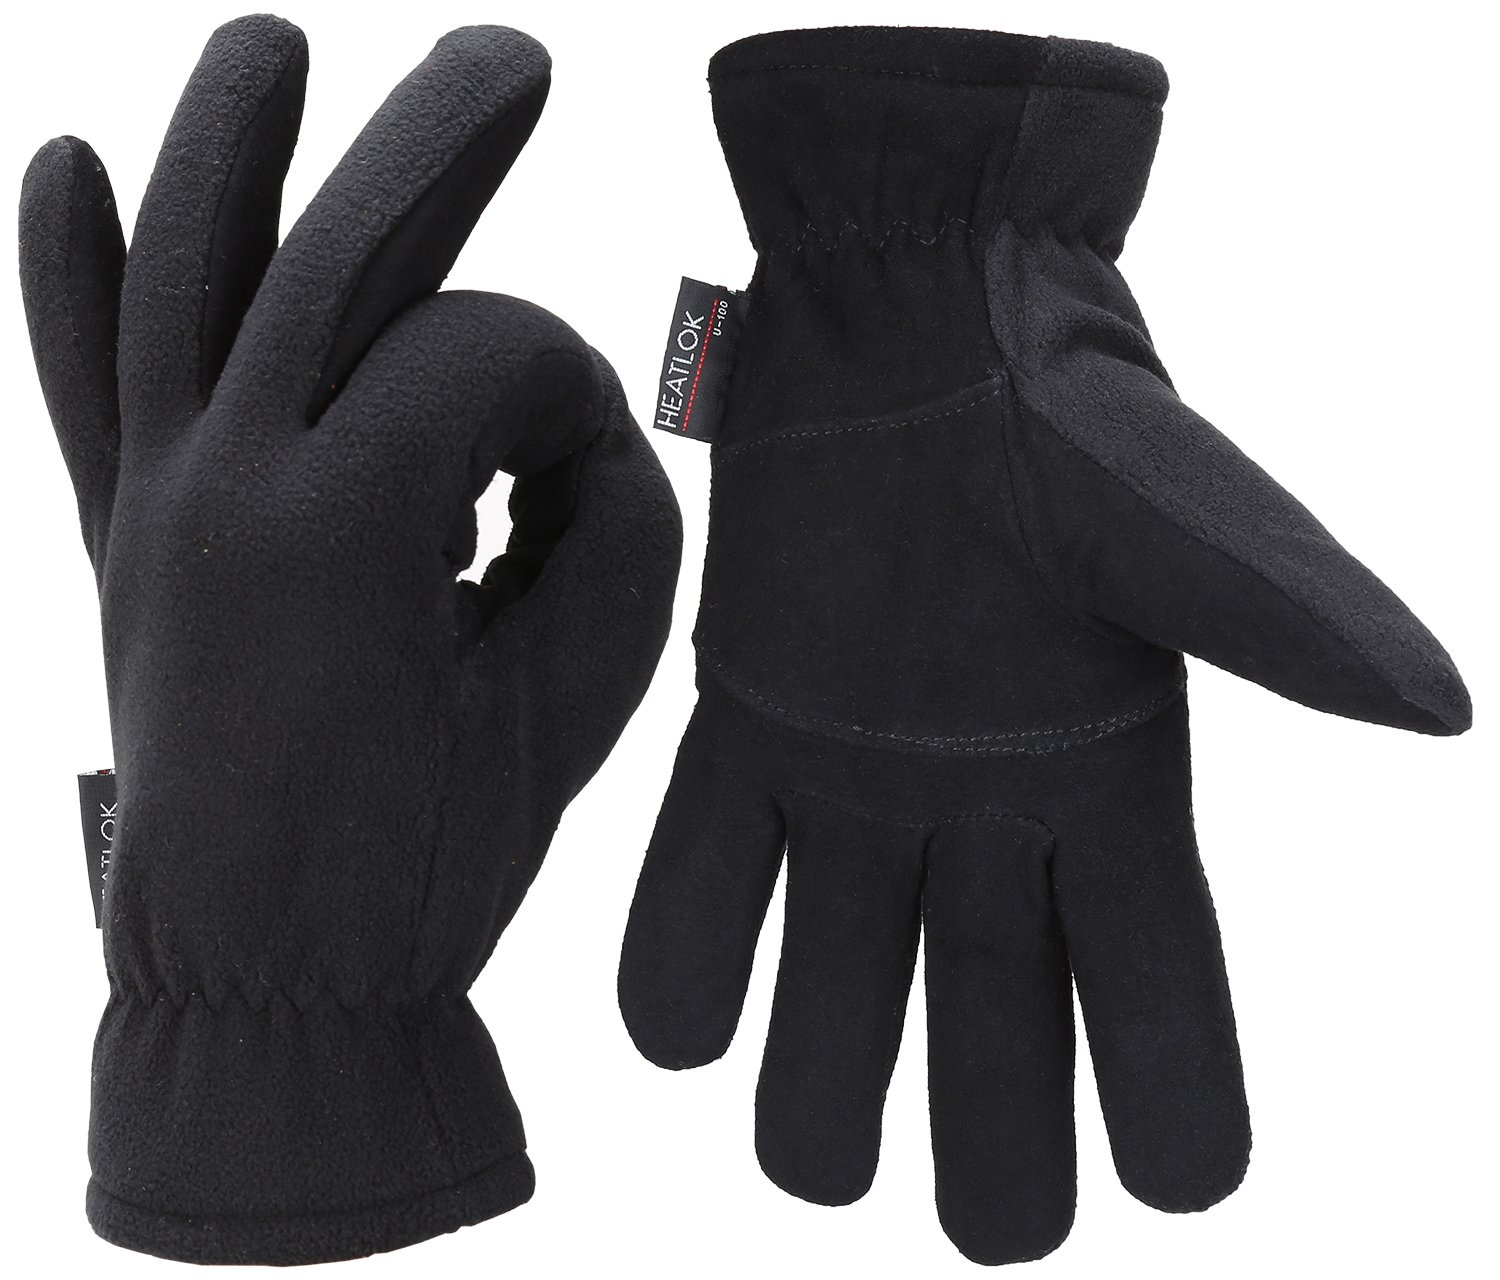 Fantastic Zone Men Winter Gloves, -20°F Cold Proof Thermal Gloves, Deerskin Suede Leather Palm and Polar Fleece Back with Heatlok Insulated Cotton Layer - Keep Warm in Cold Weather, Black, L